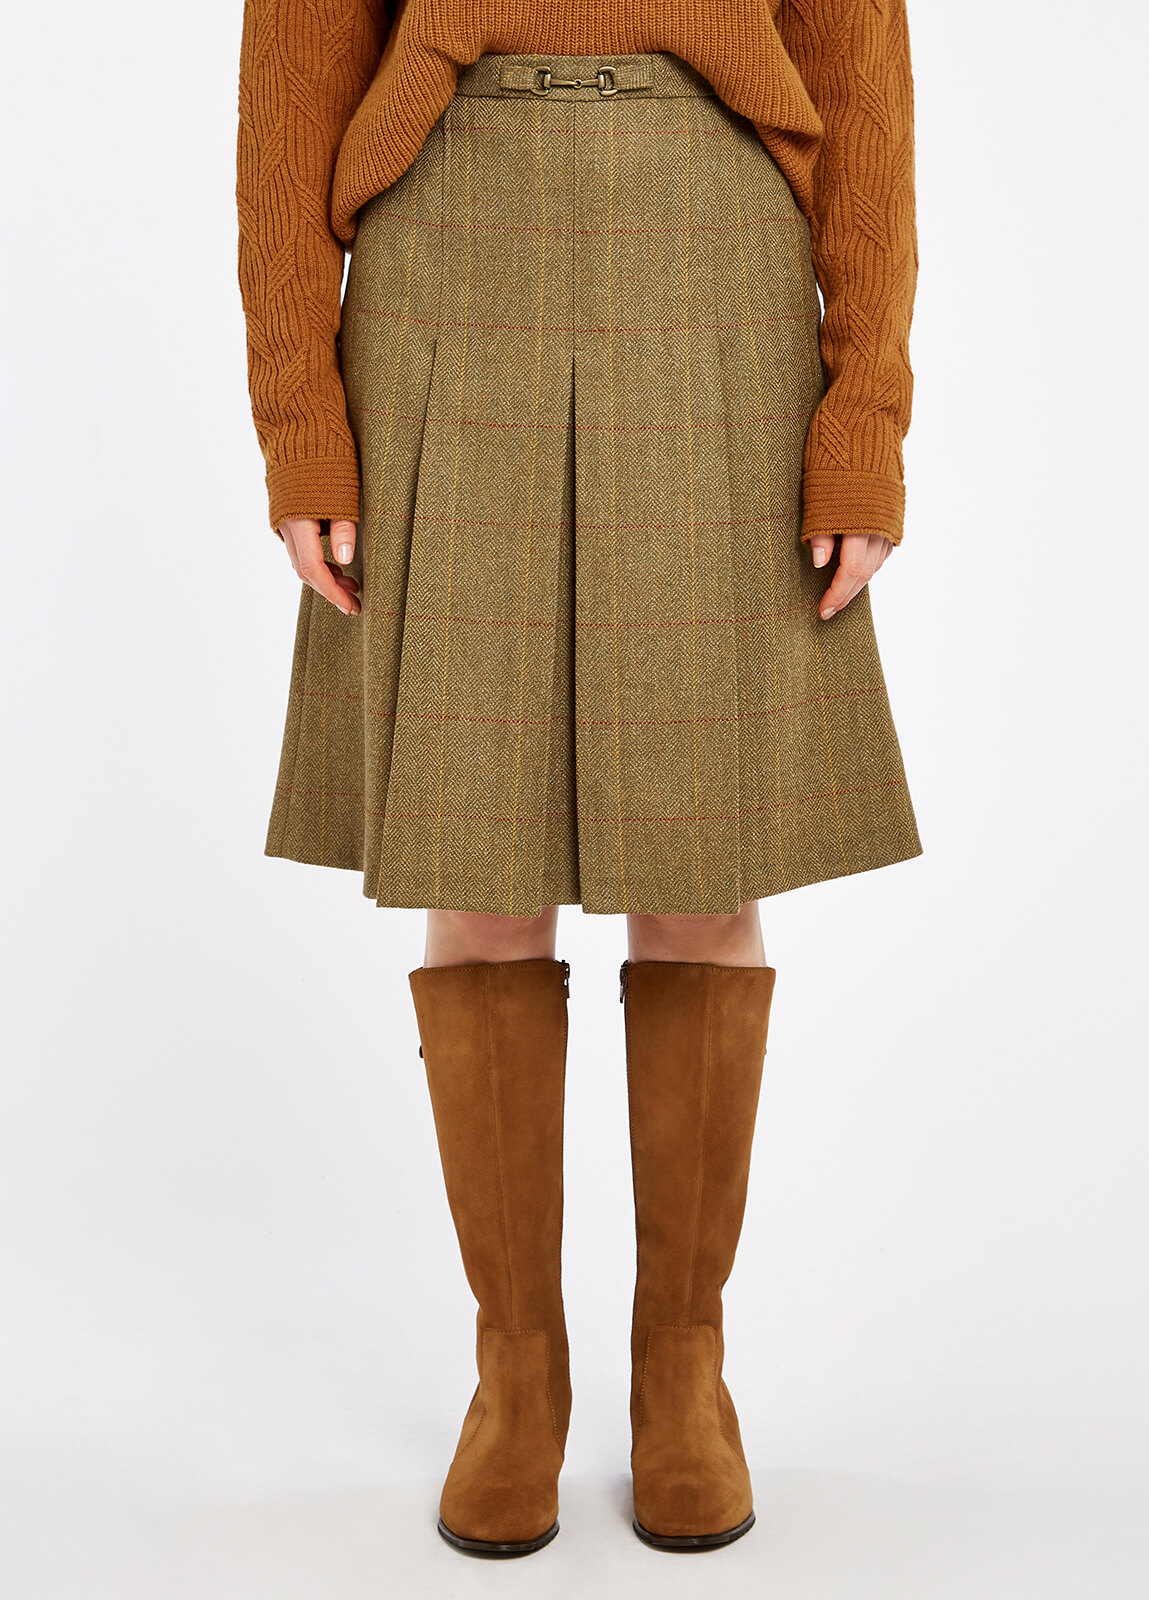 Spruce Tweed Skirt - Elm